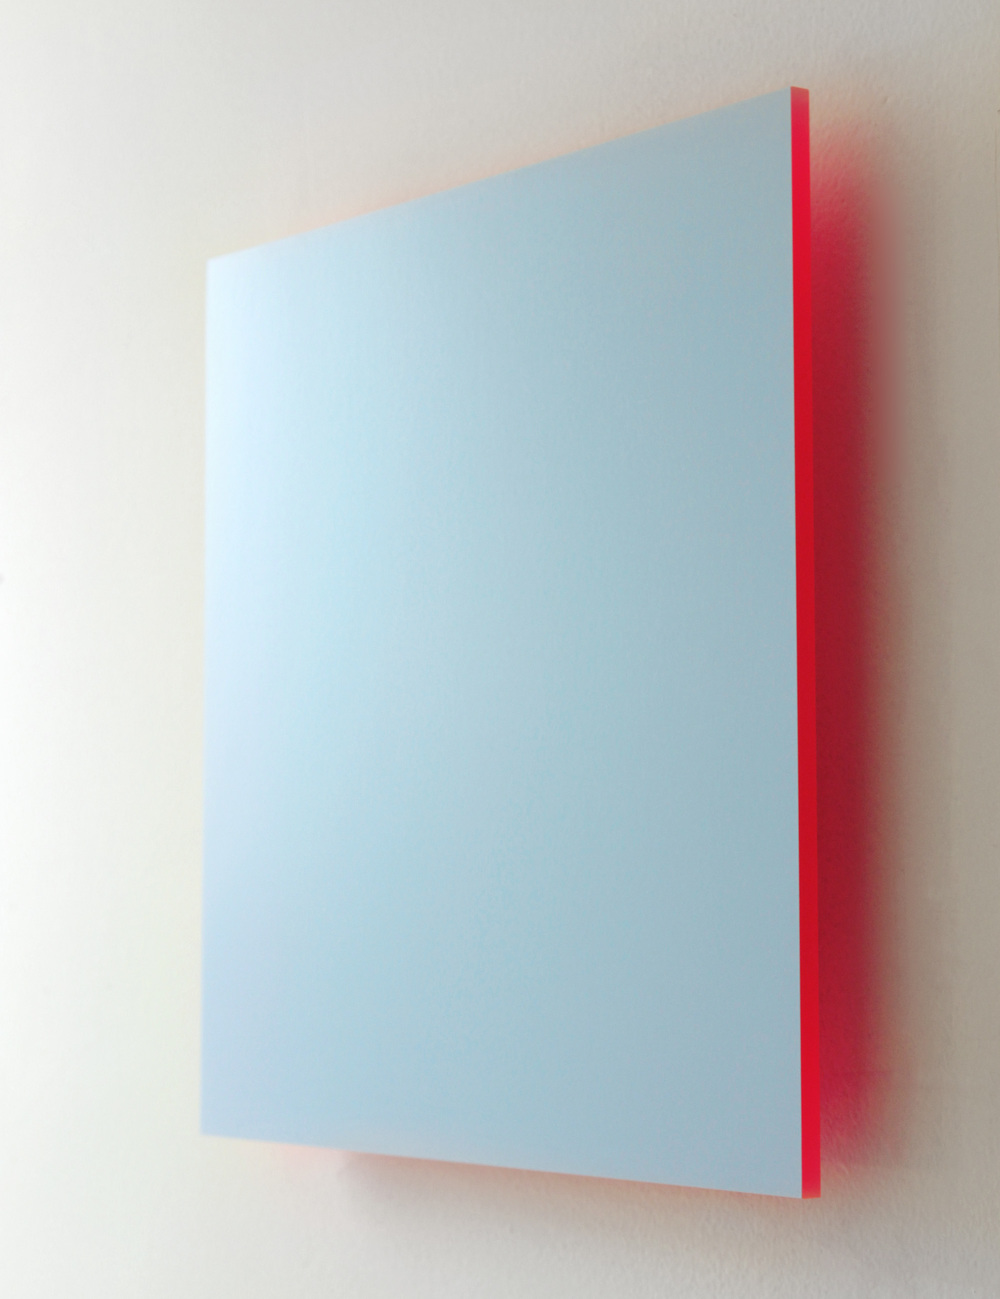 Blue Sky, Pink Light Digital C-Print mounted on Pink Plexi 2013